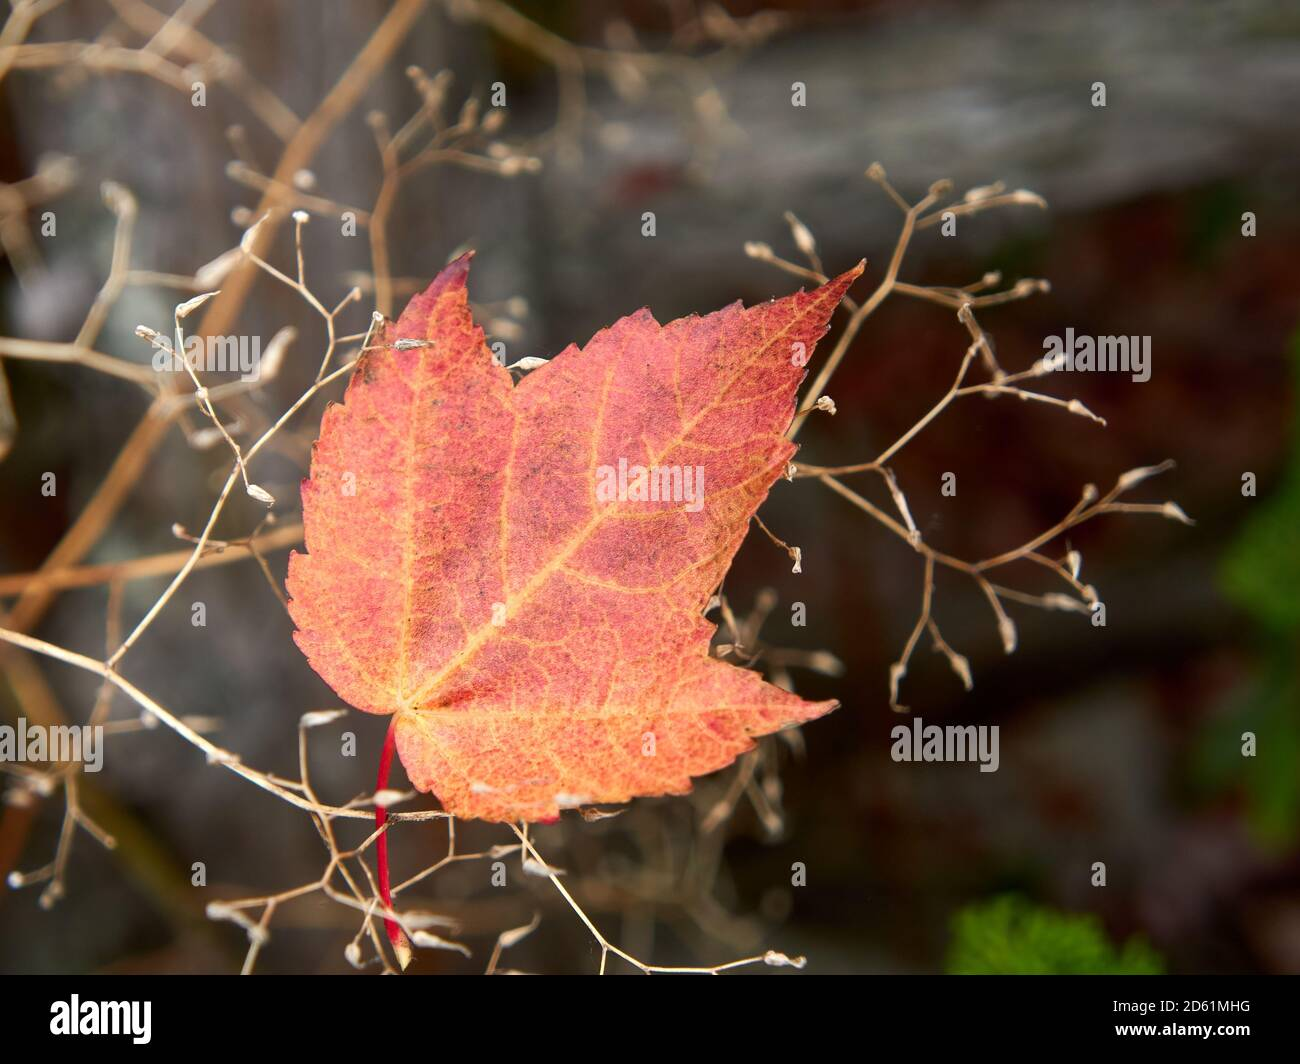 closeup-of-a-single-red-maple-leaf-acer-